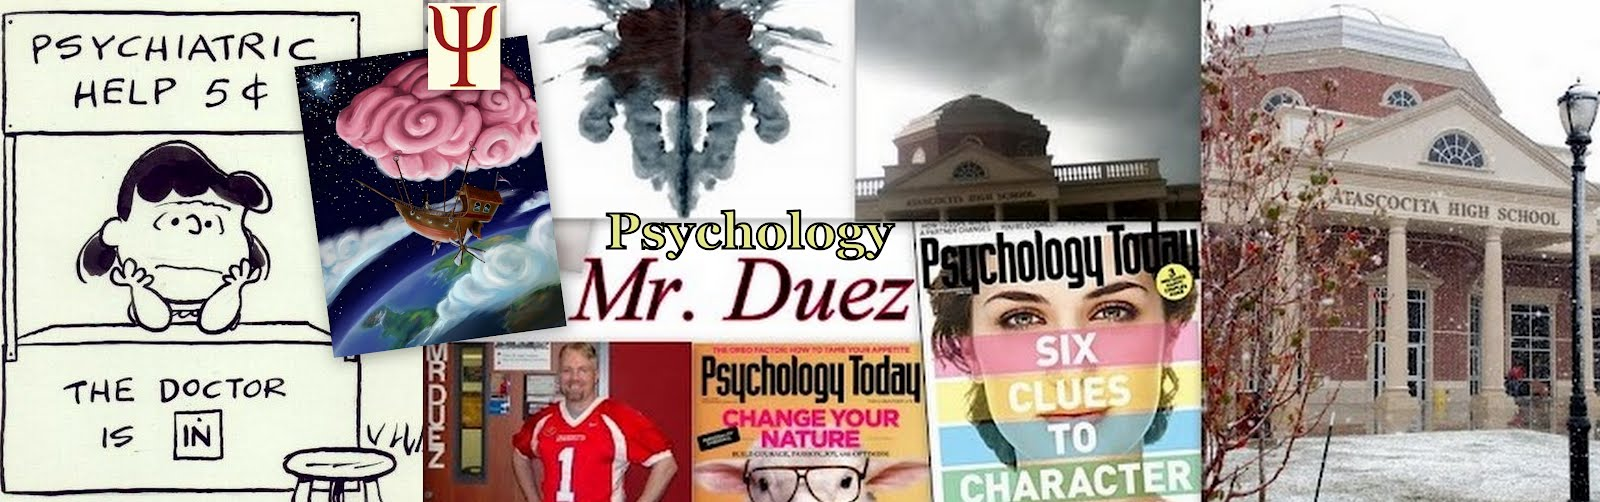 Psychology with Mr. Duez